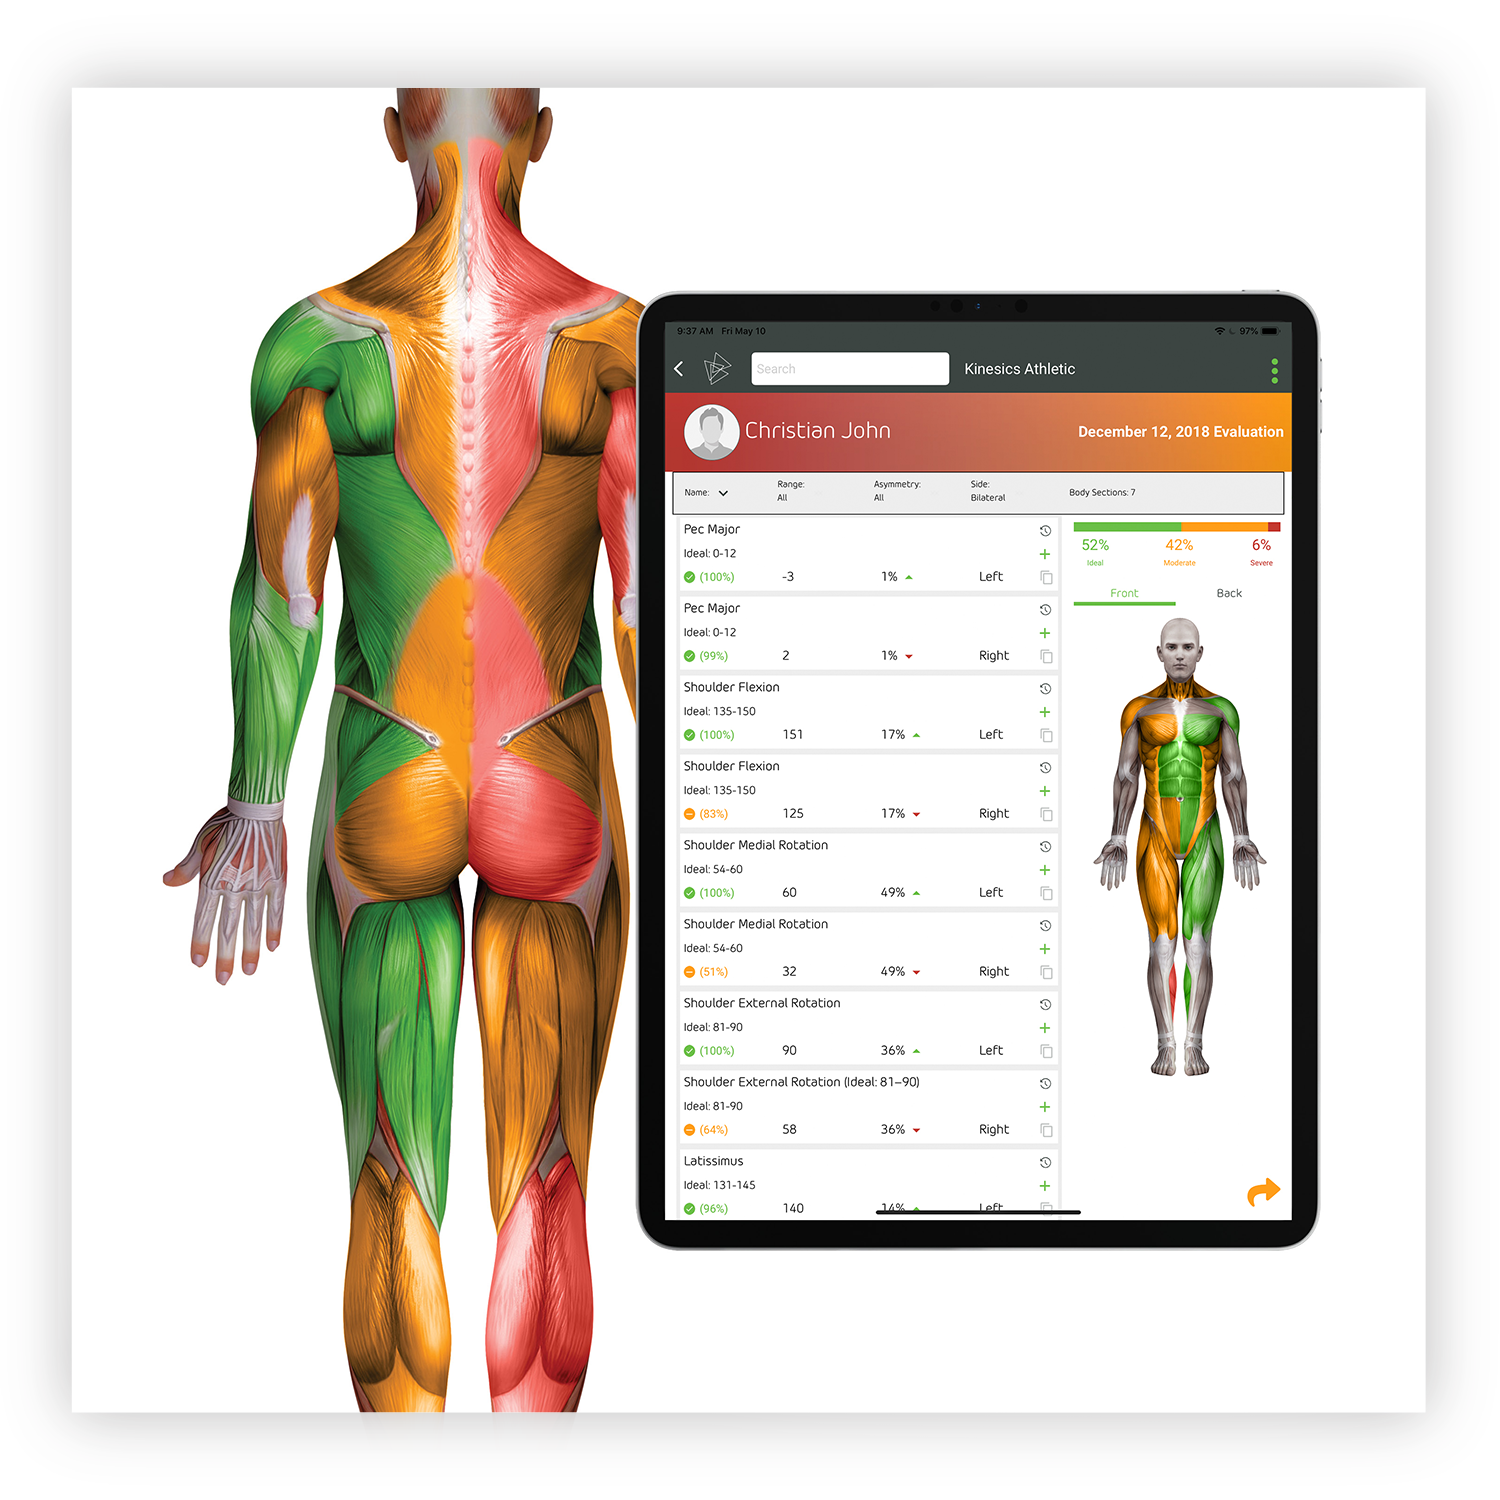 Injury Prevention - Kinesics App provides objective, quantifiable data analytics to proactively identify muscle imbalances and joint restrictions. Early in-app flexibility and mobility programs reduce the risk of injury.